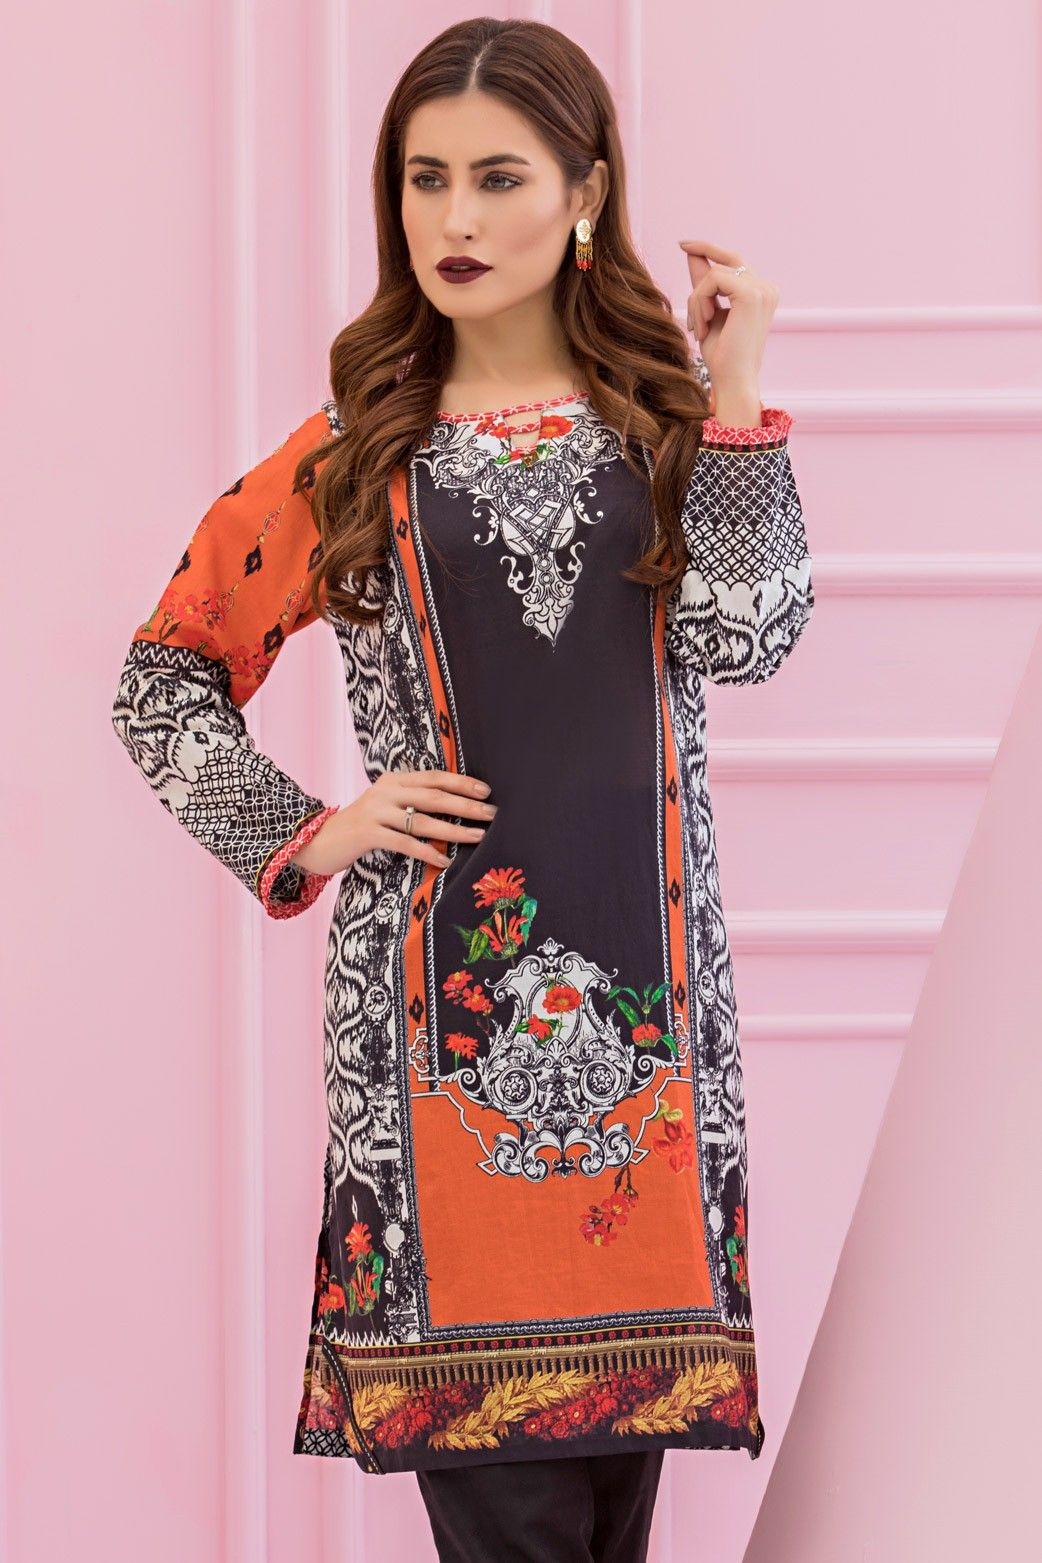 b4017f5523 Ready to Wear Digital Printed Kurti by Zeen Women 2019 is available online  at a discounted price this Winter Clearance Sale.